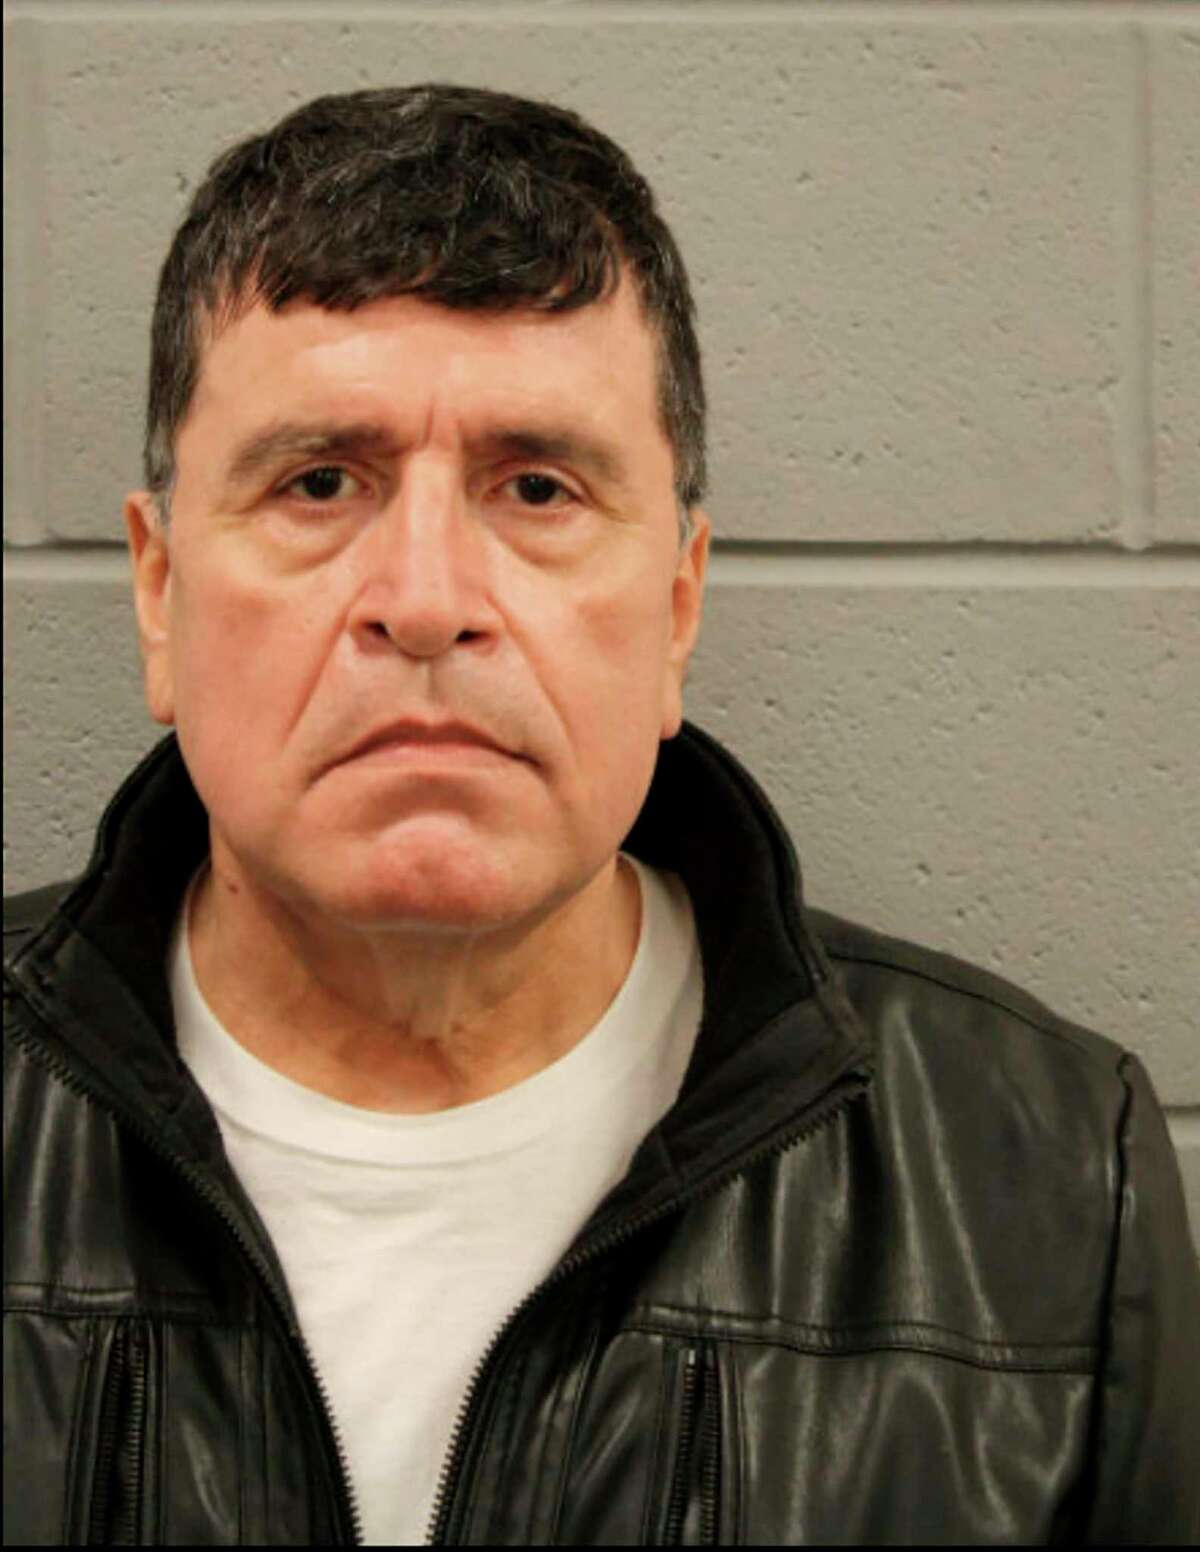 An undated booking photo provided by the Houston Police Department of Mark Aguirre, a former Houston police captain. Aguirre, who authorities said was investigating a voter fraud conspiracy theory for a conservative activist group, was arrested and charged with pointing his gun at an air-conditioner repairman he had pursued to try to uncover fraudulent ballots, according to prosecutors.